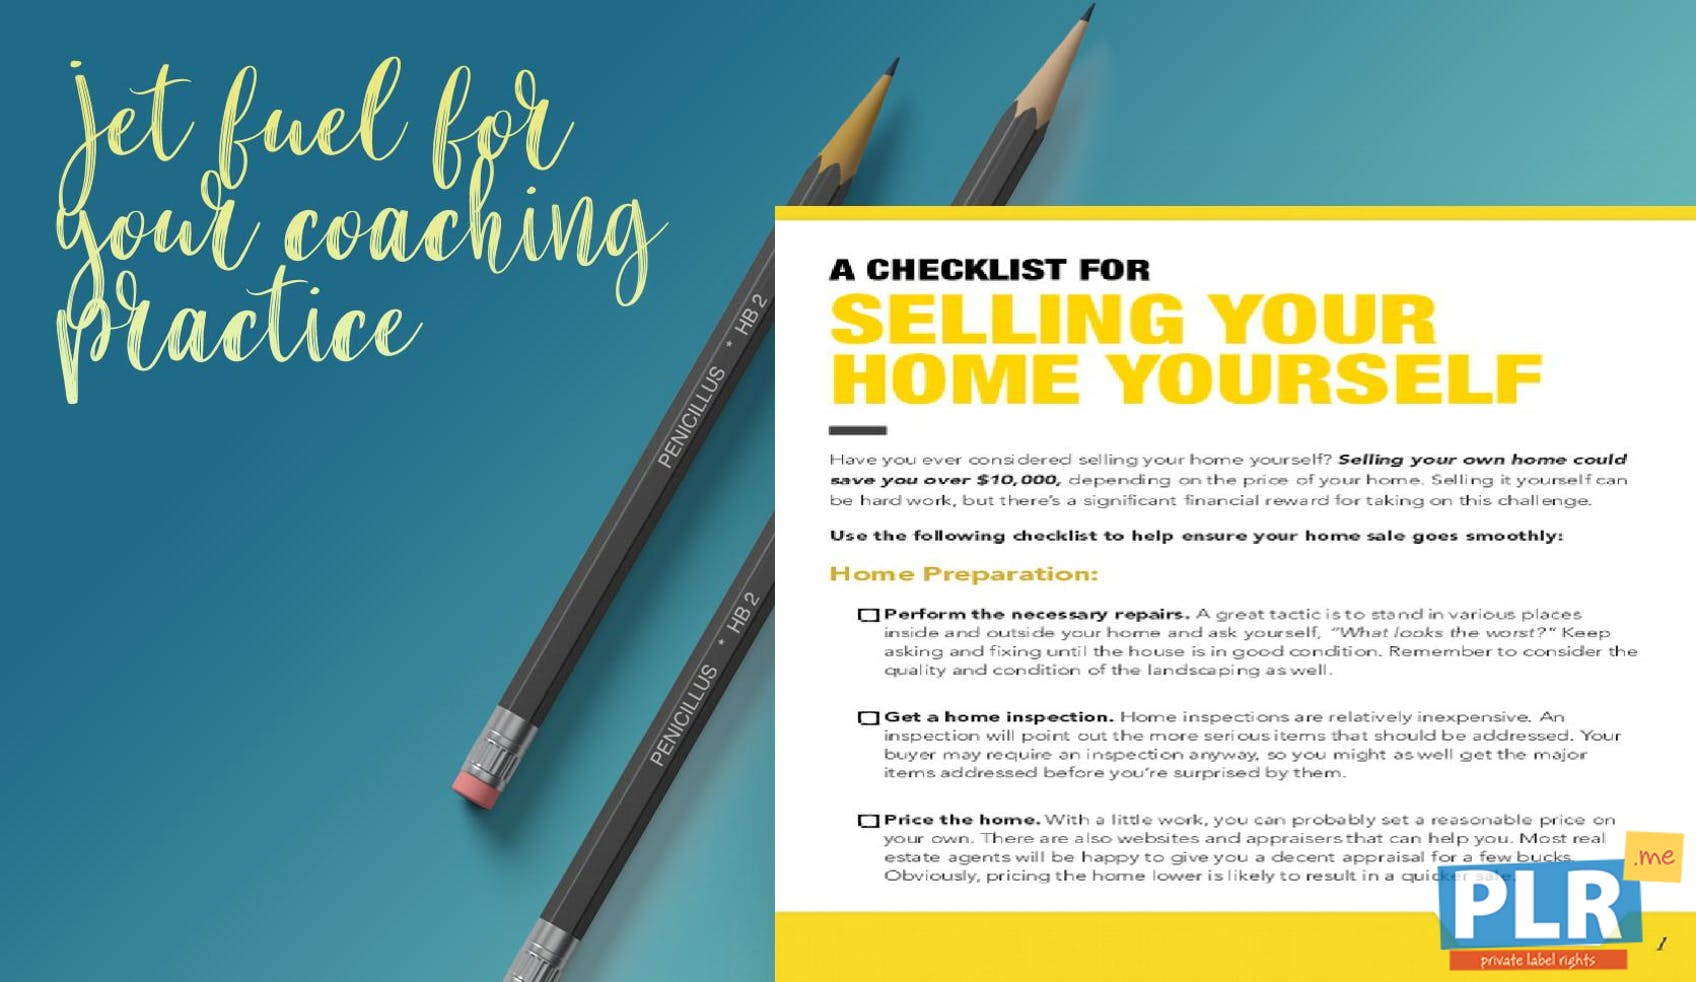 A Checklist For Selling Your Home Yourself